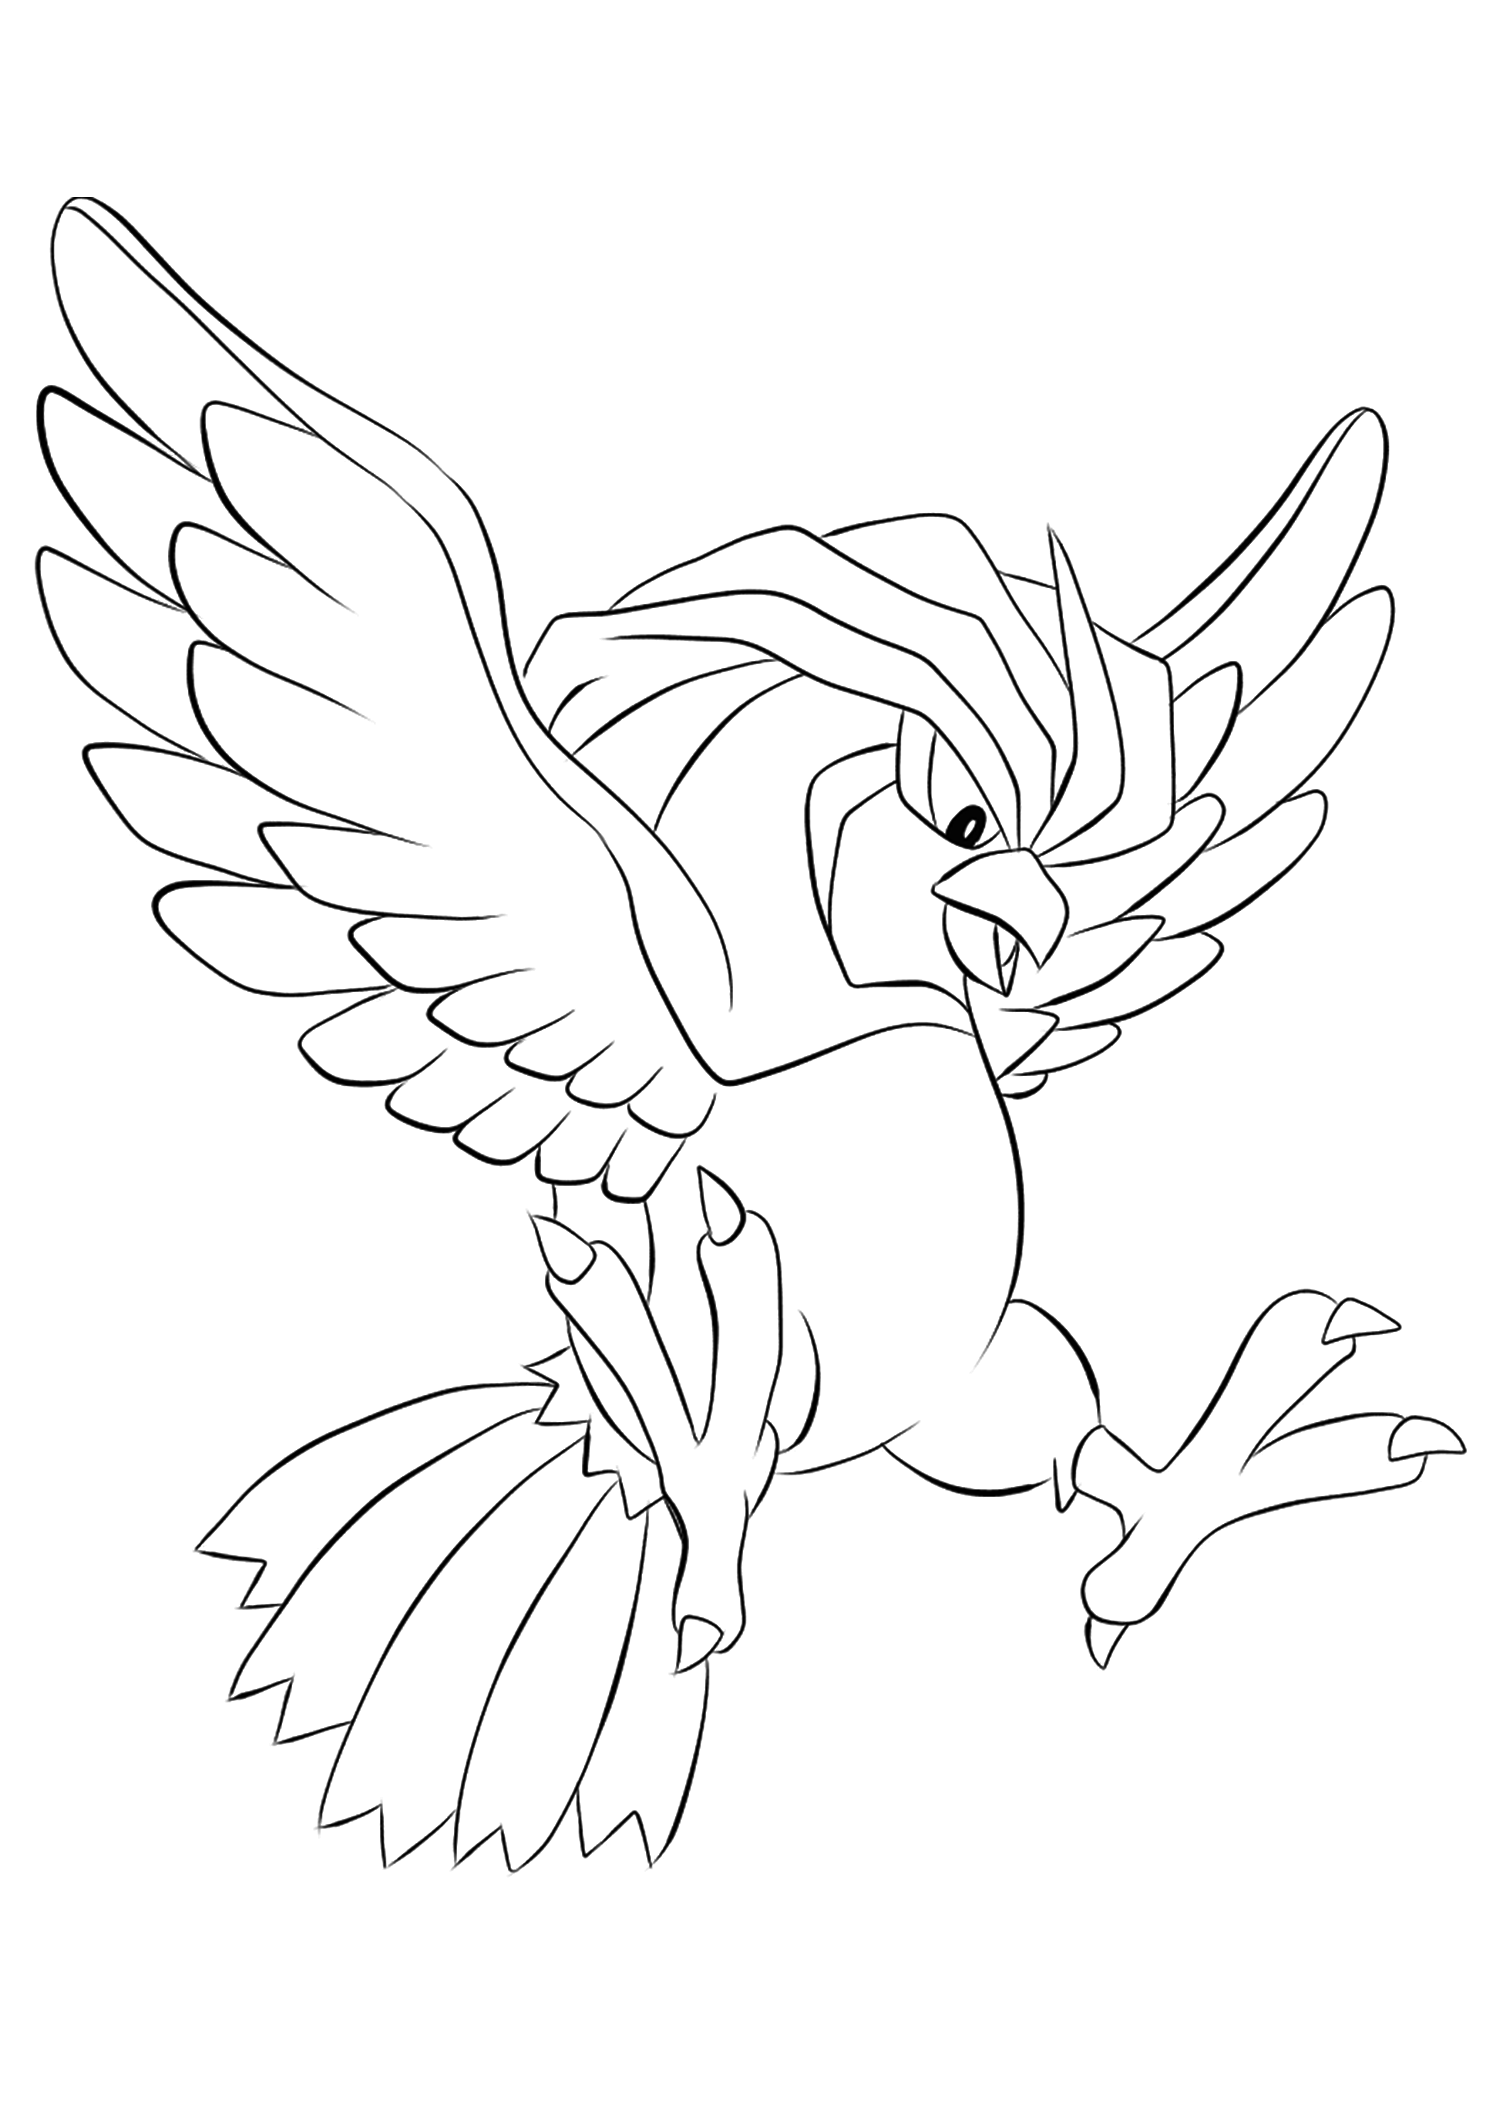 Number 17 Coloring Page